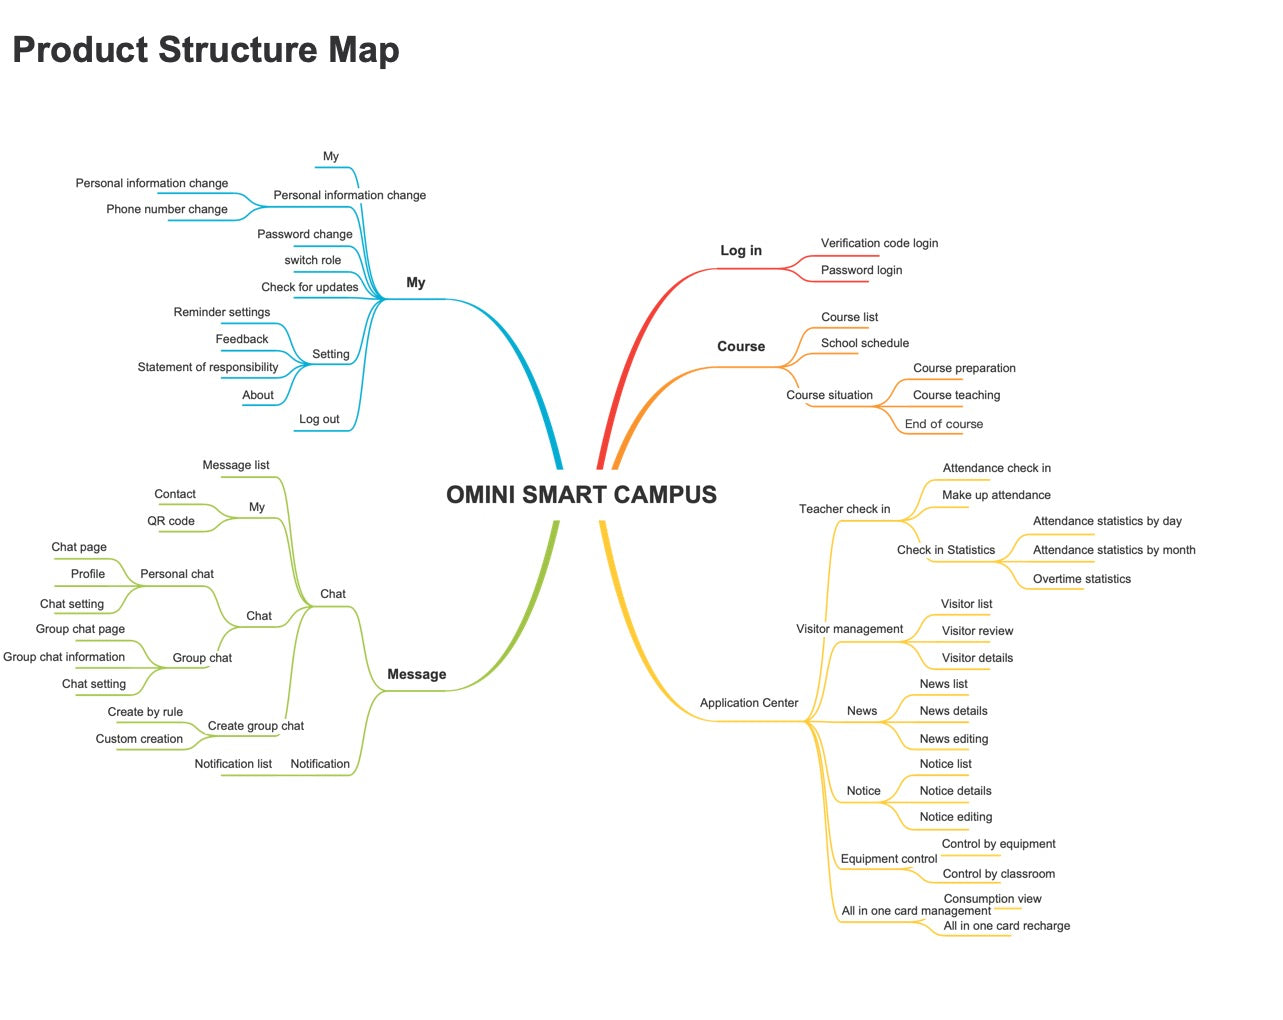 Structure map